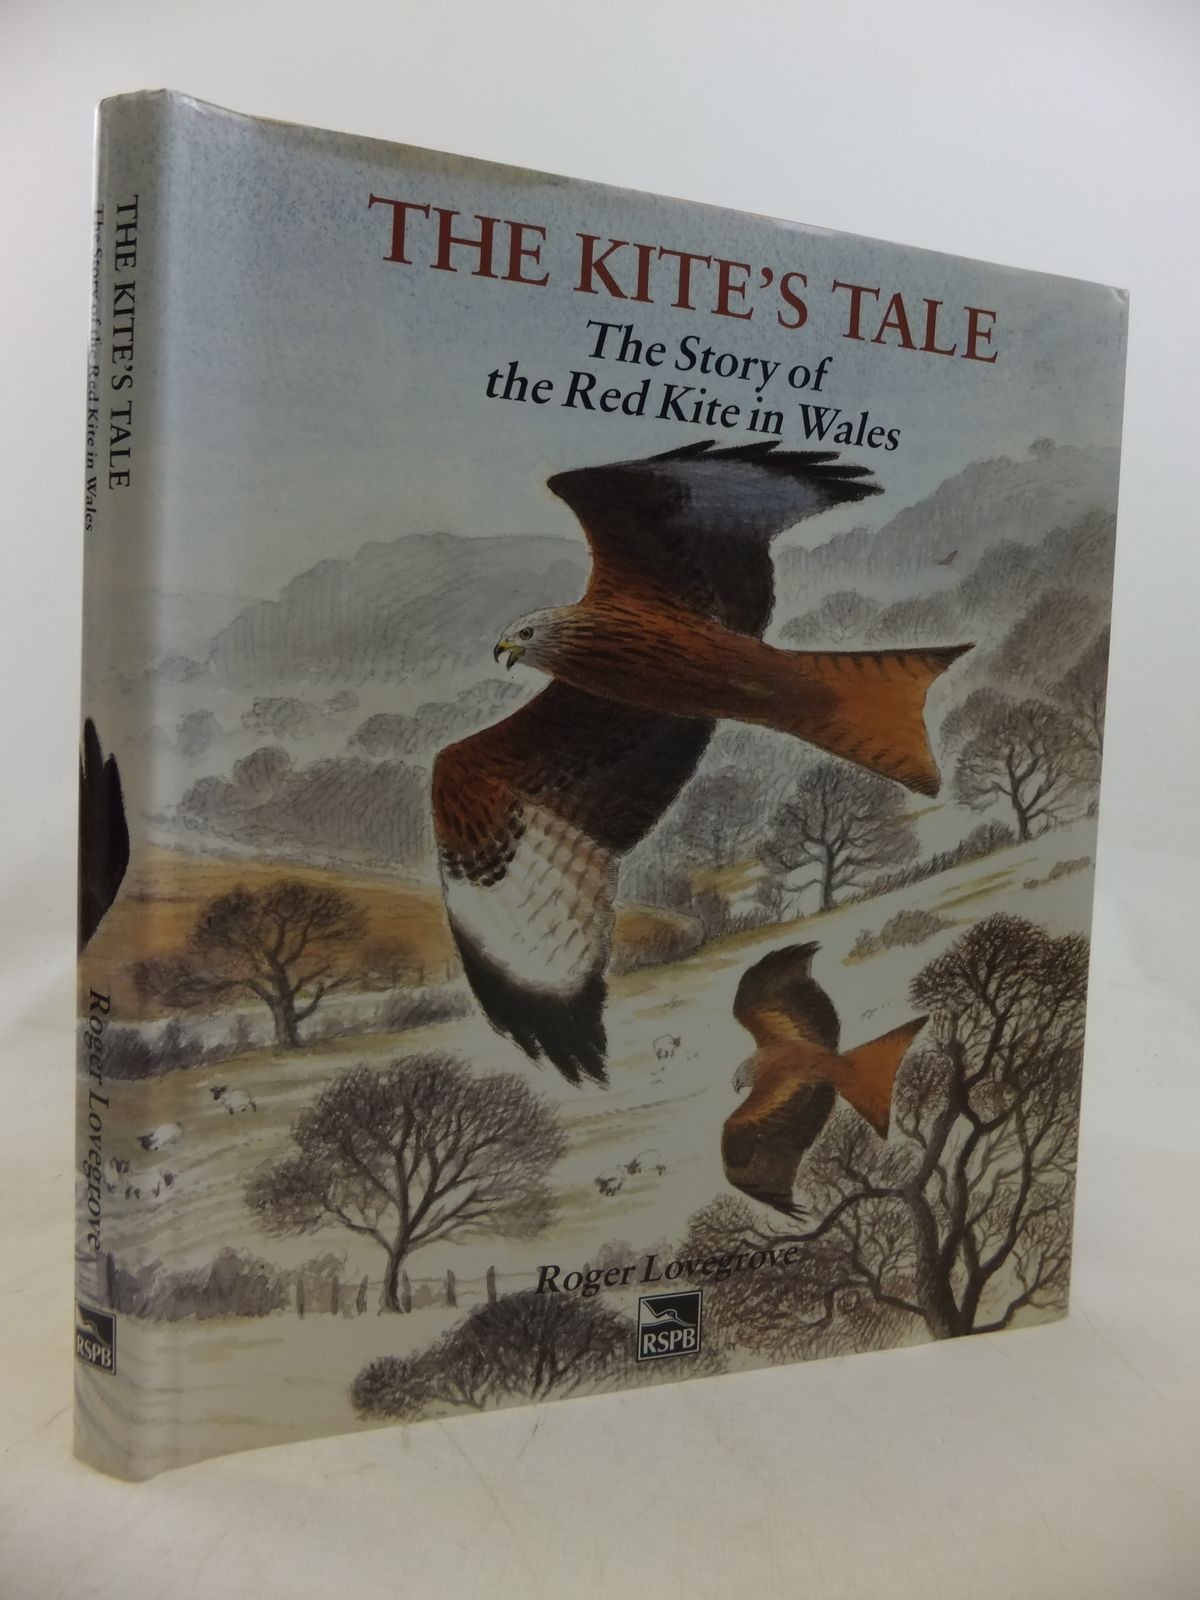 Photo of THE KITE'S TALE THE STORY OF THE RED KITE IN WALES written by Lovegrove, Roger illustrated by Rees, Darren published by RSPB (STOCK CODE: 1810665)  for sale by Stella & Rose's Books